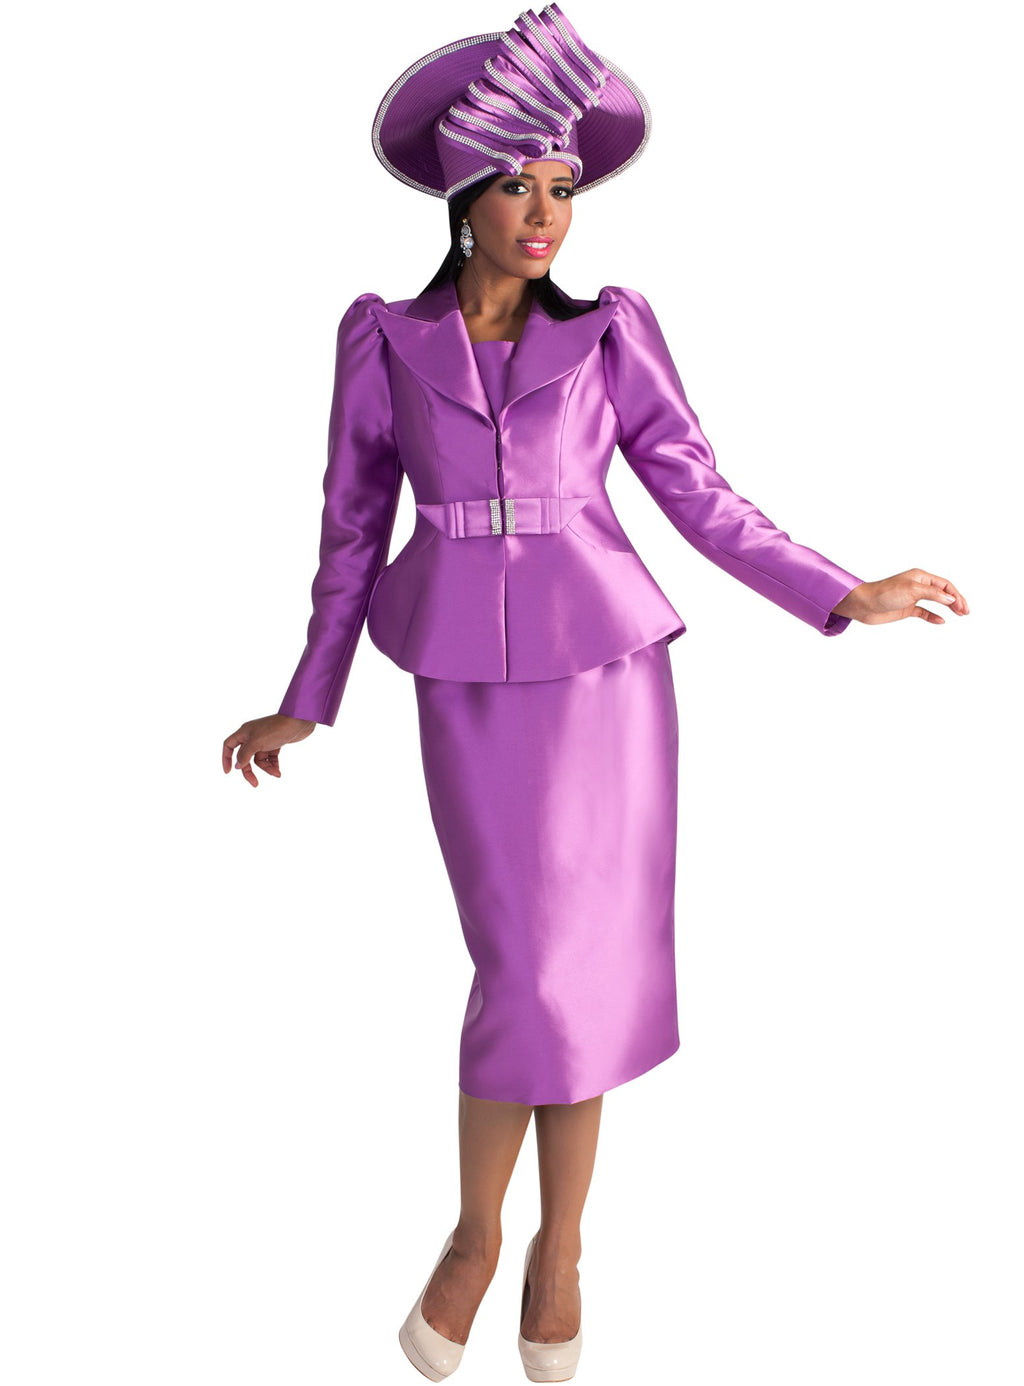 Puffed-Sleeve Dramatic Collared Suit